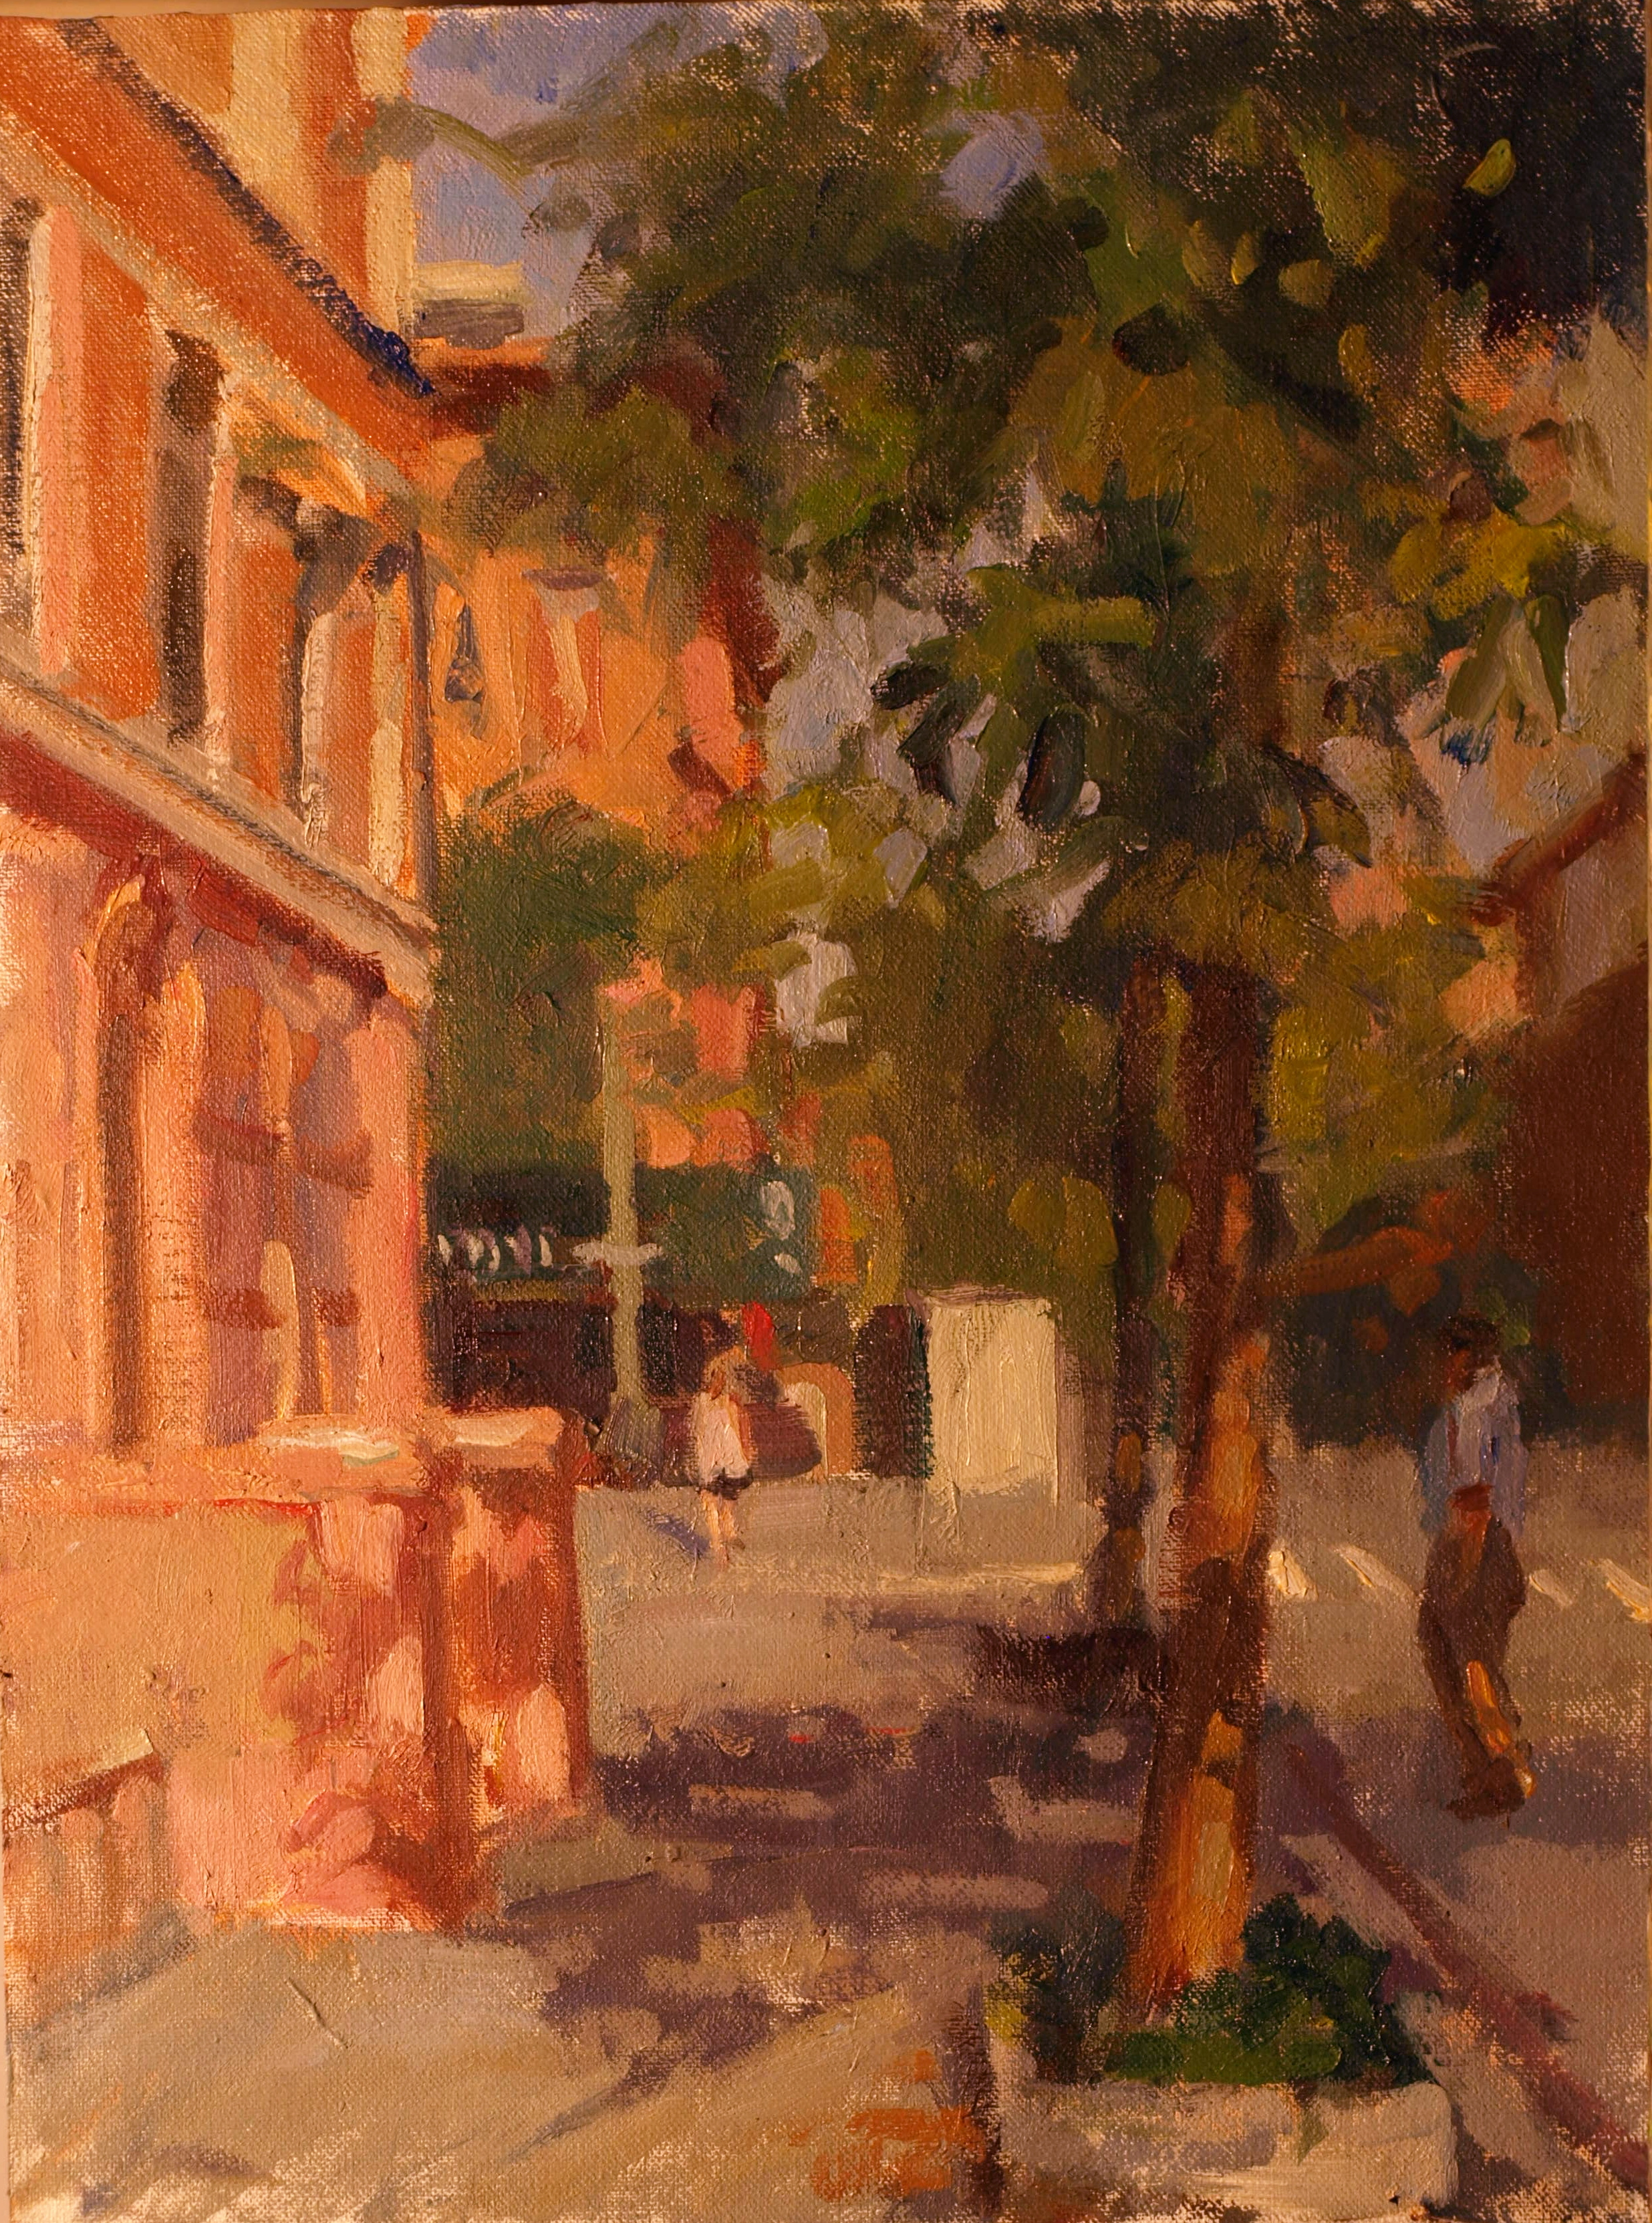 West 87th Street, Oil on Canvas on Panel, 16 x 12 Inches, by Susan Grisell, $300